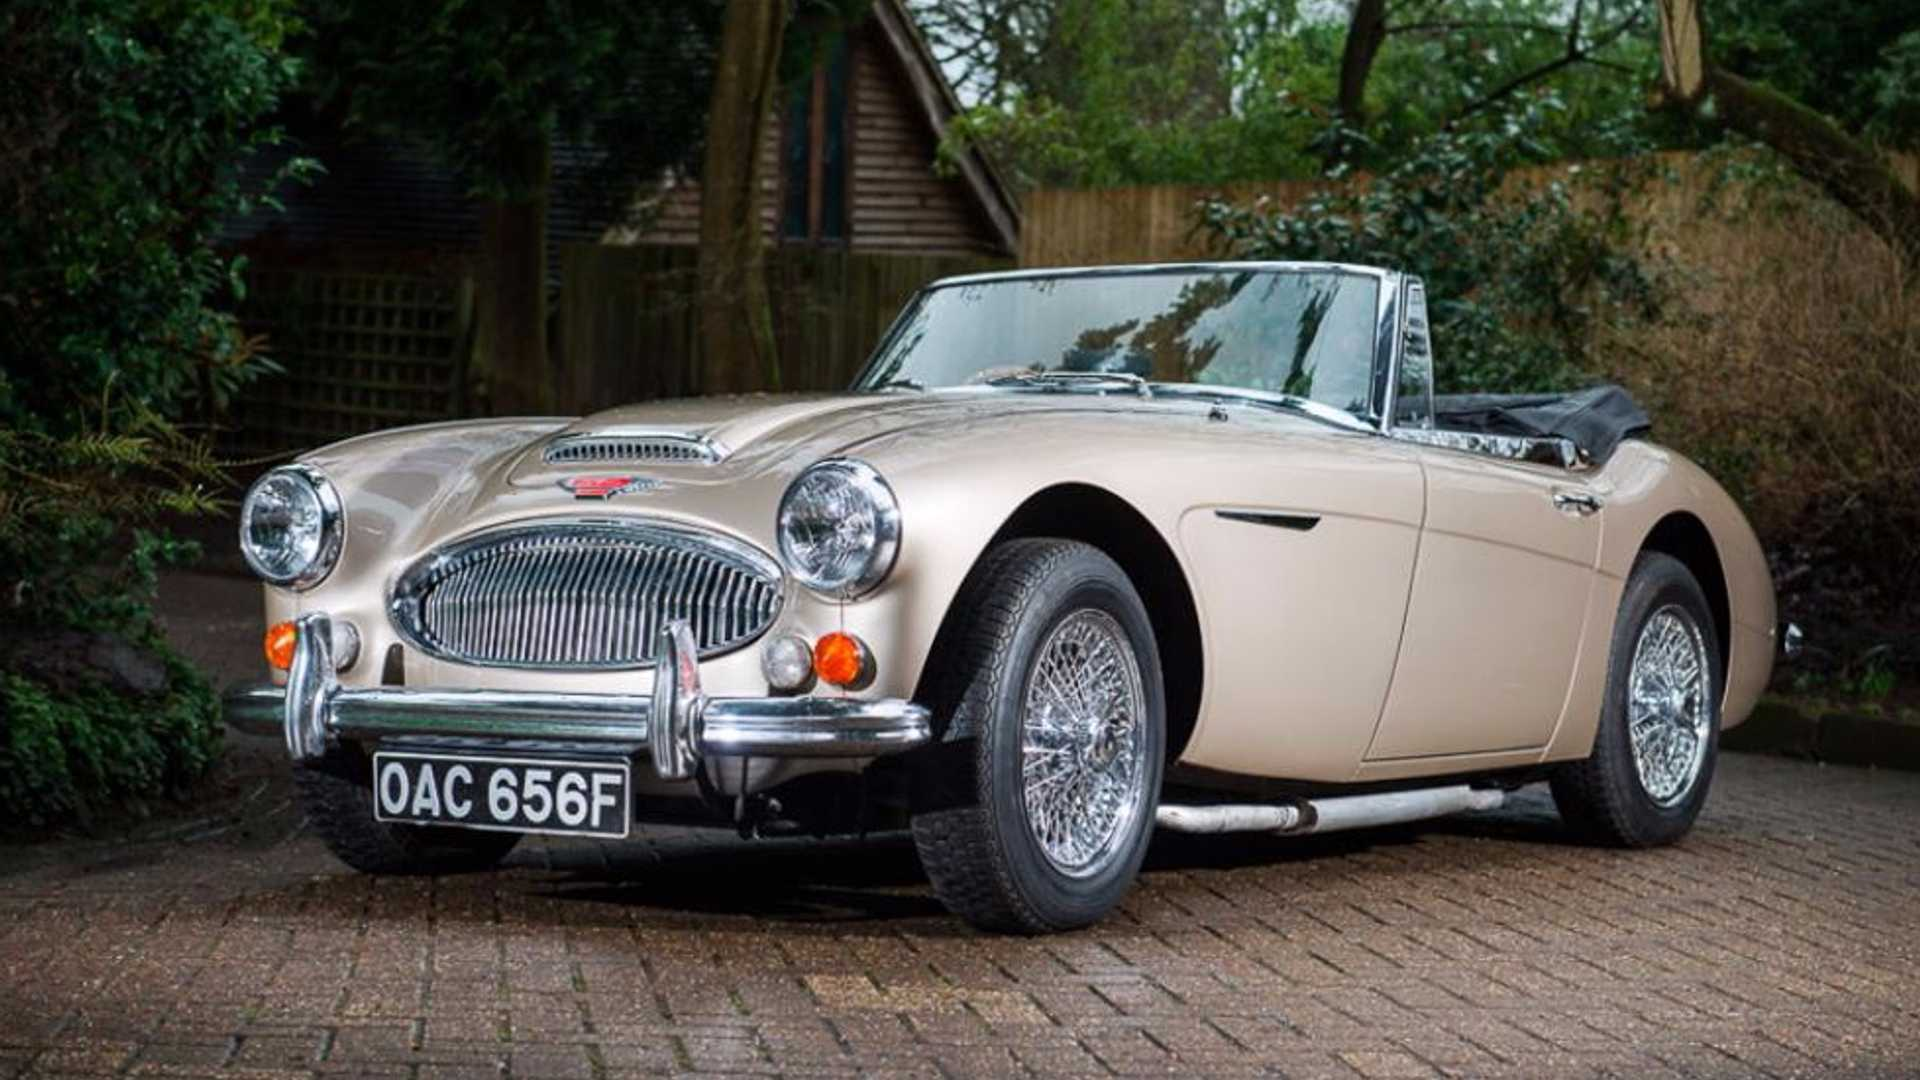 hight resolution of austin healey 3000 buying guide motorious wiring diagram austinhealey 3000 mk iii bj8 phase ii